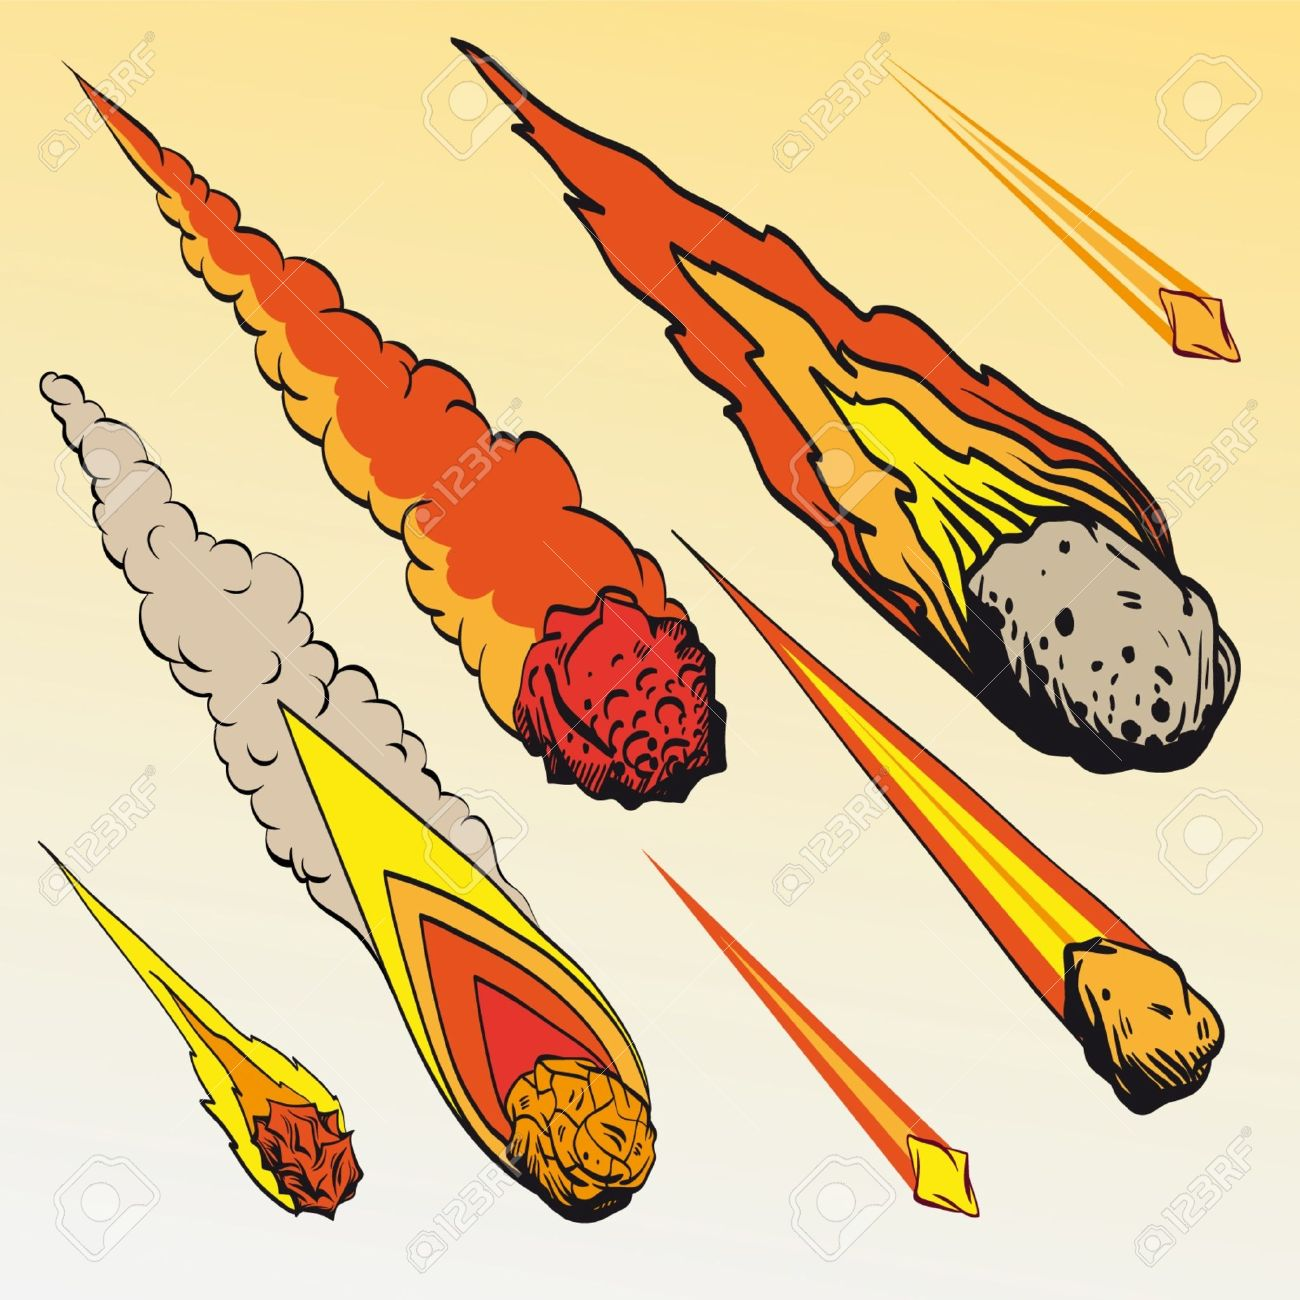 Meteor clipart #14, Download drawings